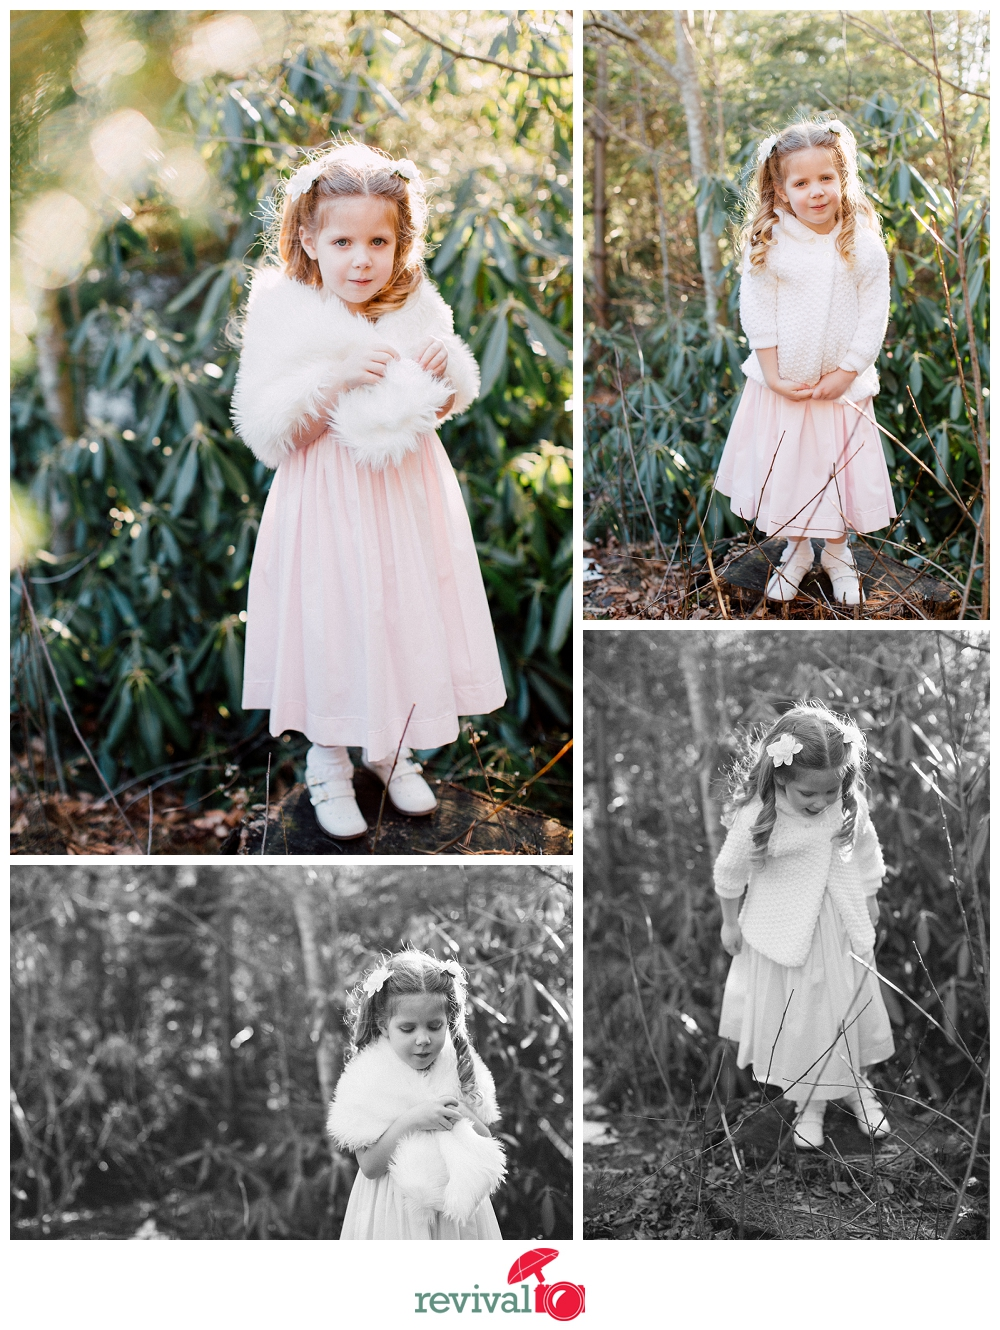 Vintage inspired child photographs by Revival Photography